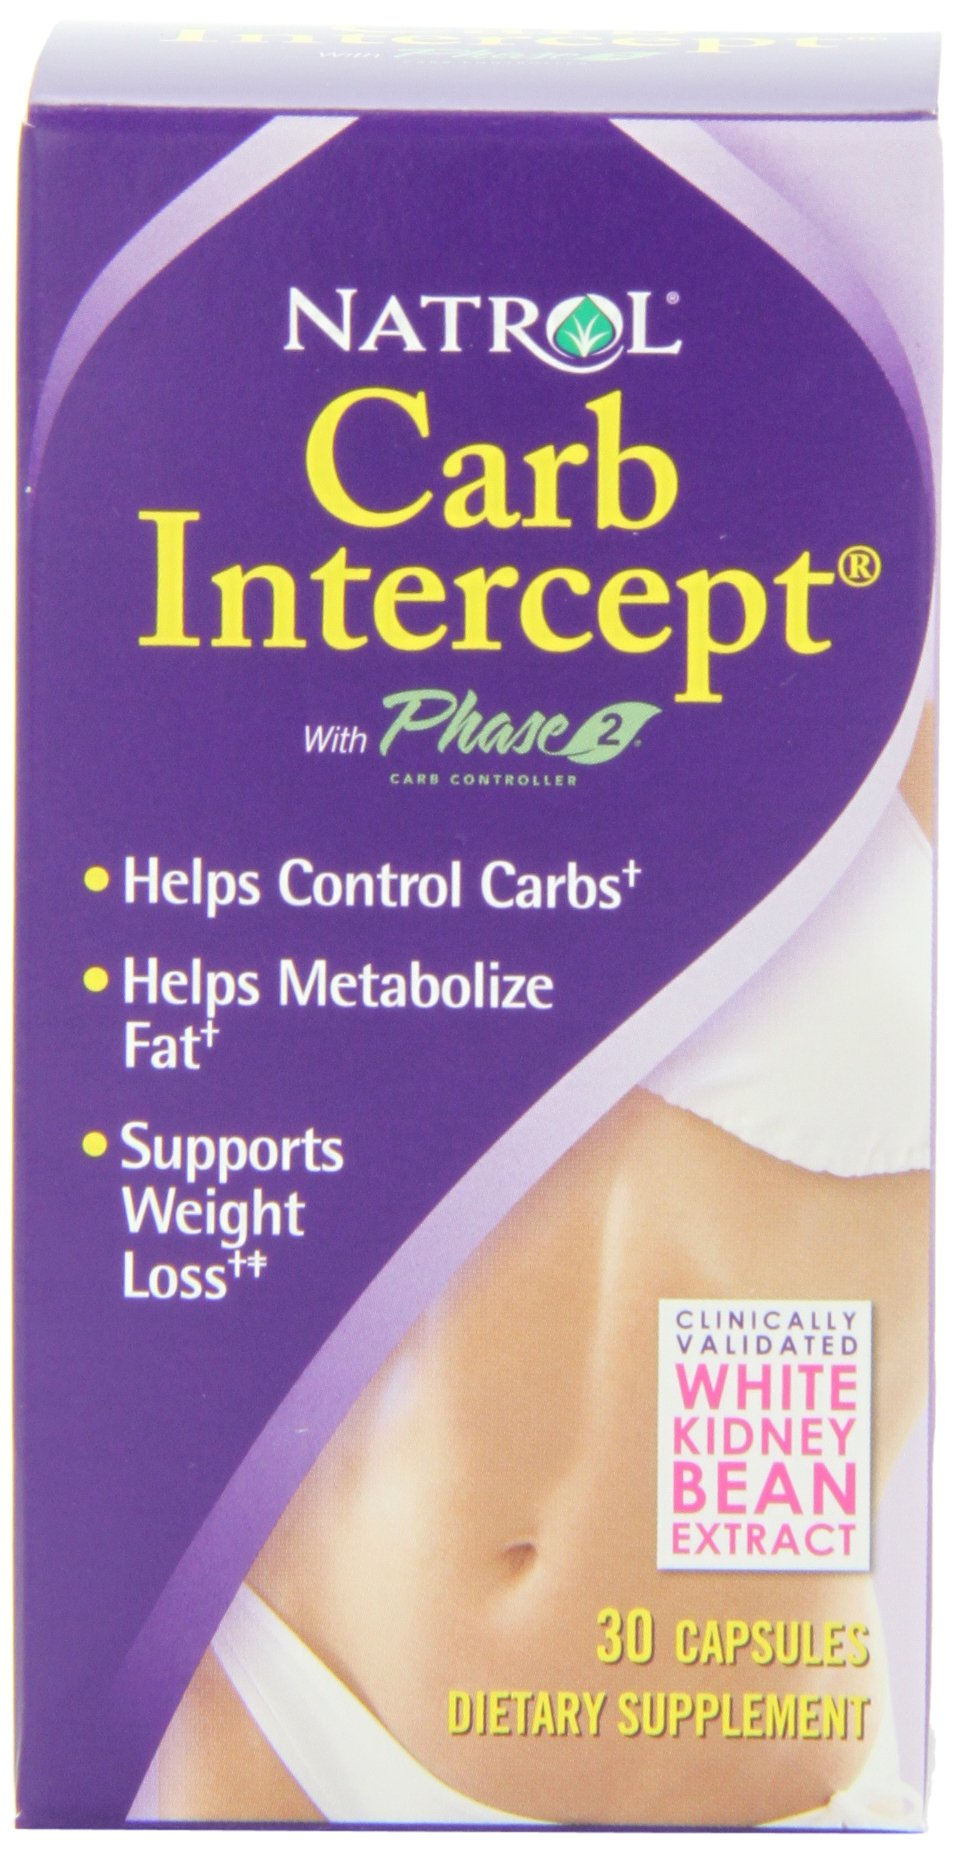 Natrol Carb Intercept with Phase 2 Starch Neutralizer, 30 Capsules (Pack of 3) by Natrol (Image #1)